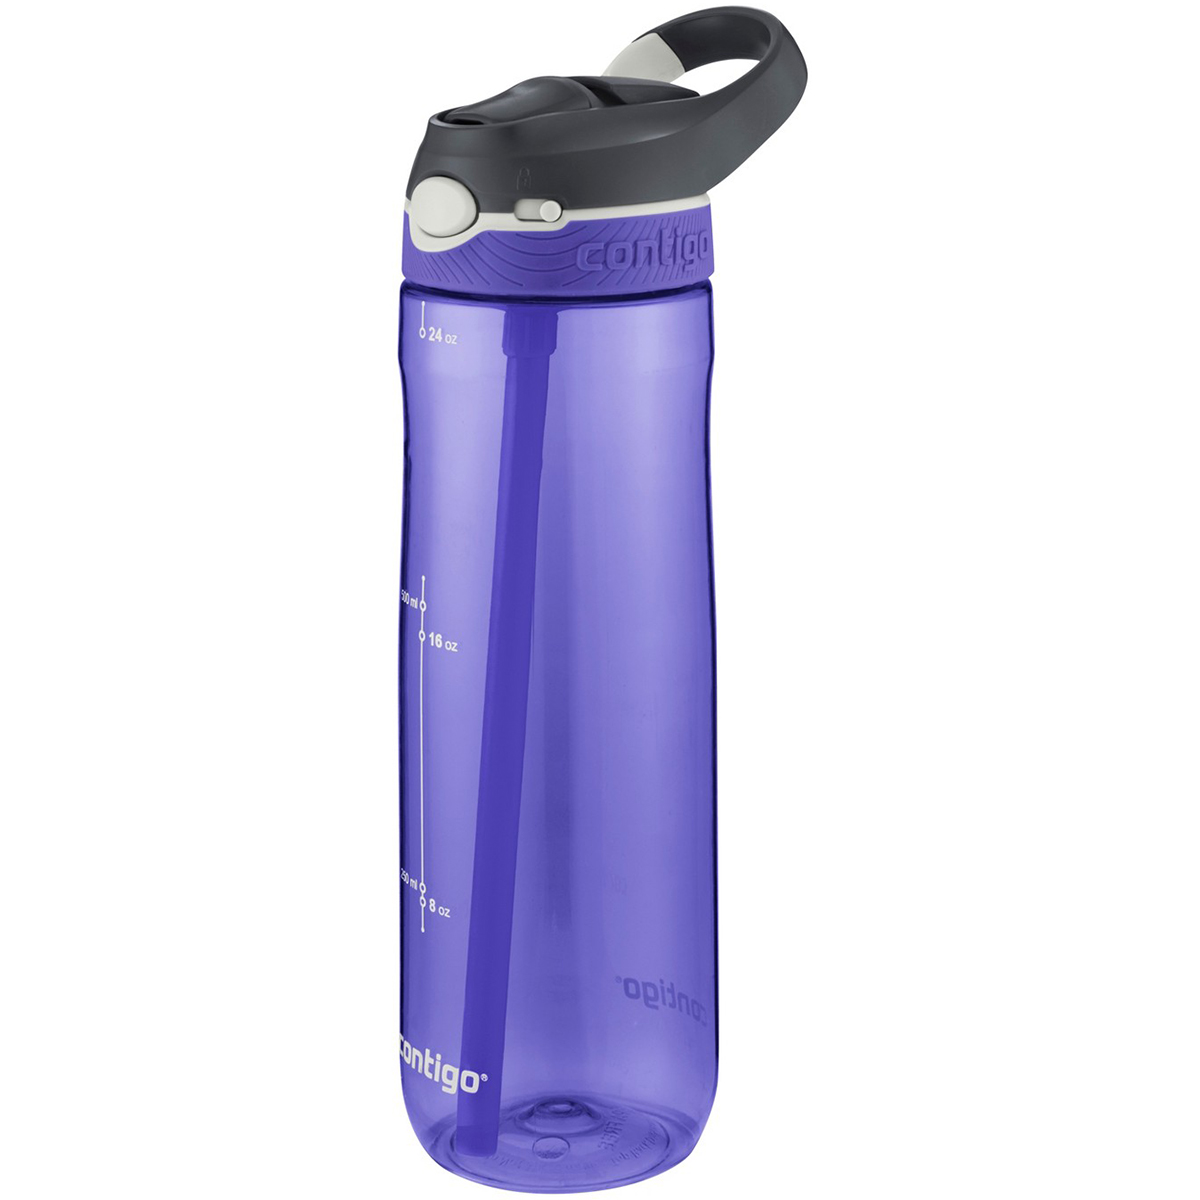 Contigo-24-oz-Ashland-Autospout-Water-Bottle Indexbild 3